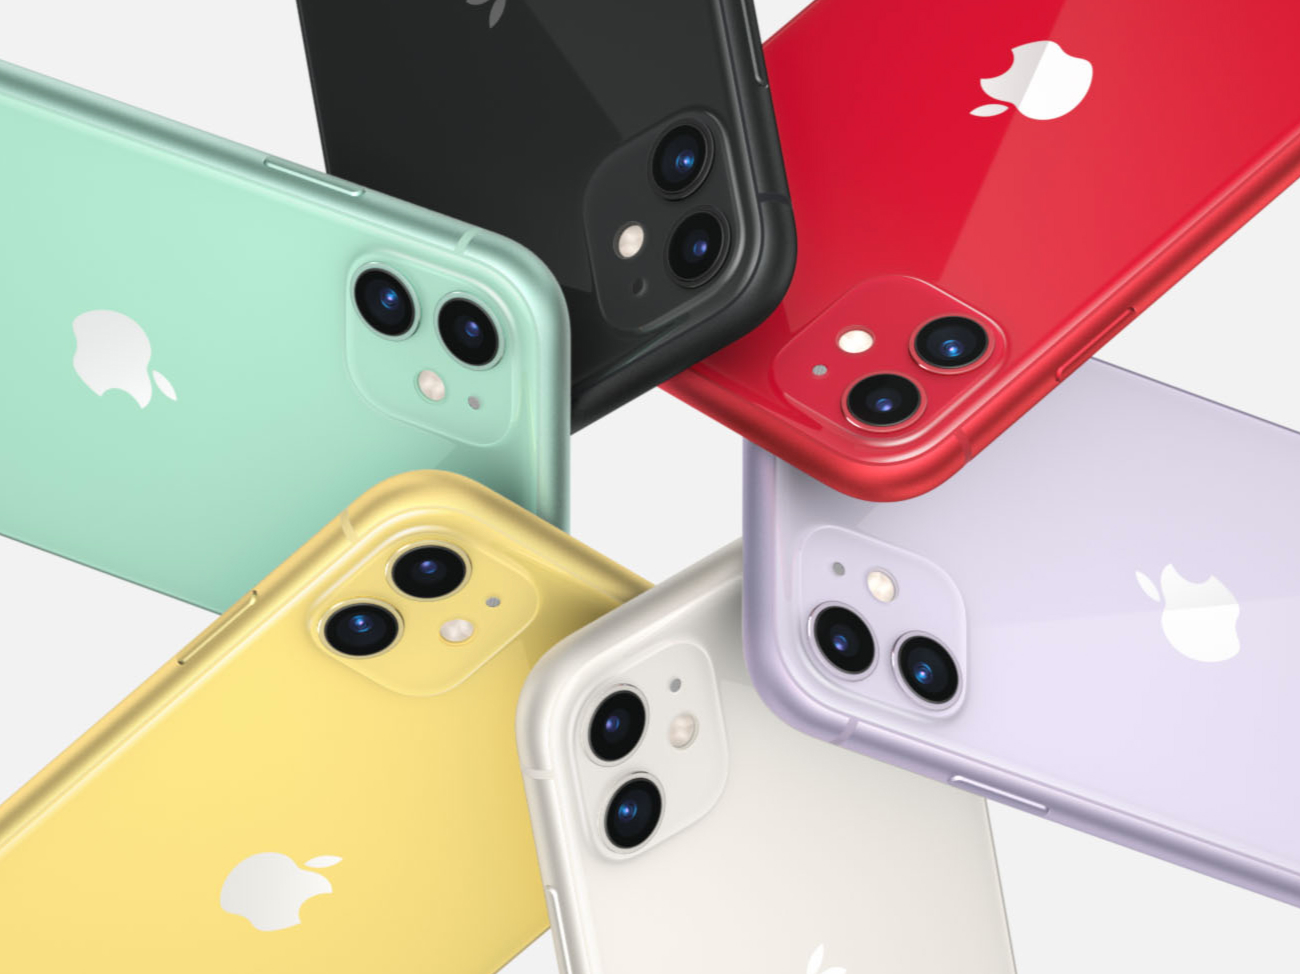 Istore Iphone 11 Contracts Start At R469pm From Today Gadget